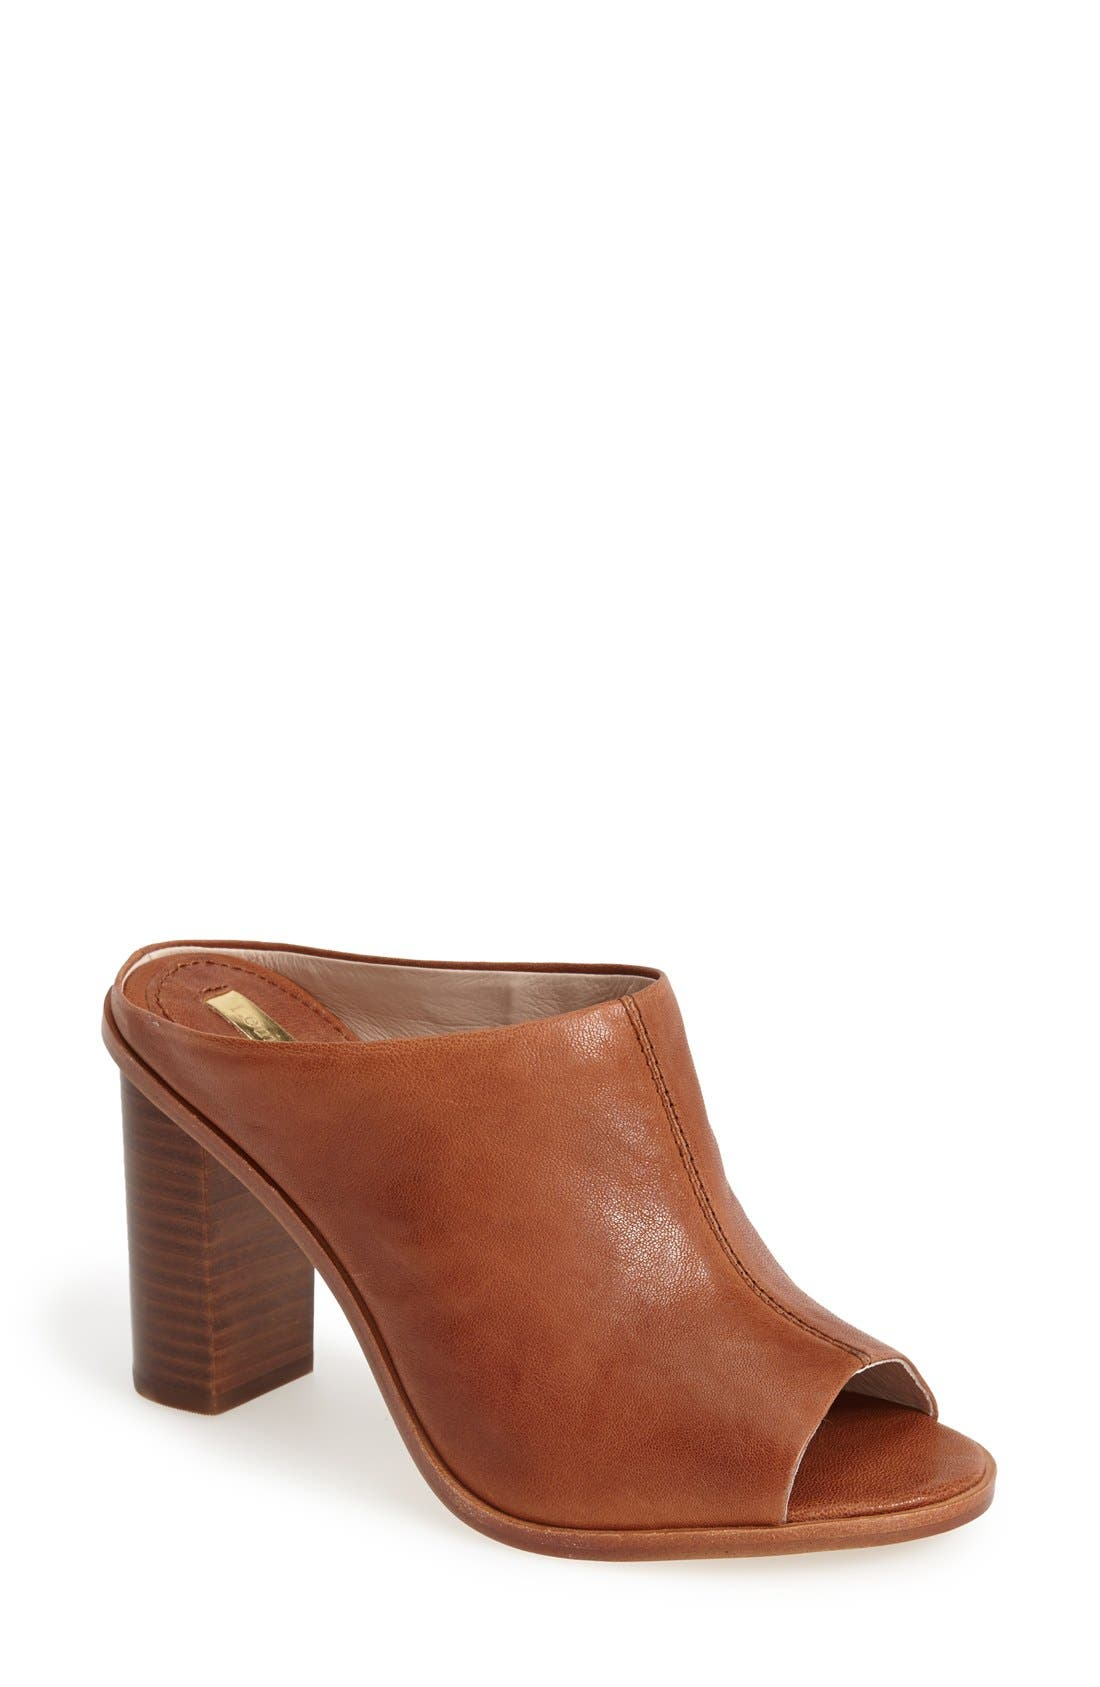 Alternate Image 1 Selected - Louise et Cie 'Lorena' Open Toe Mule (Women)